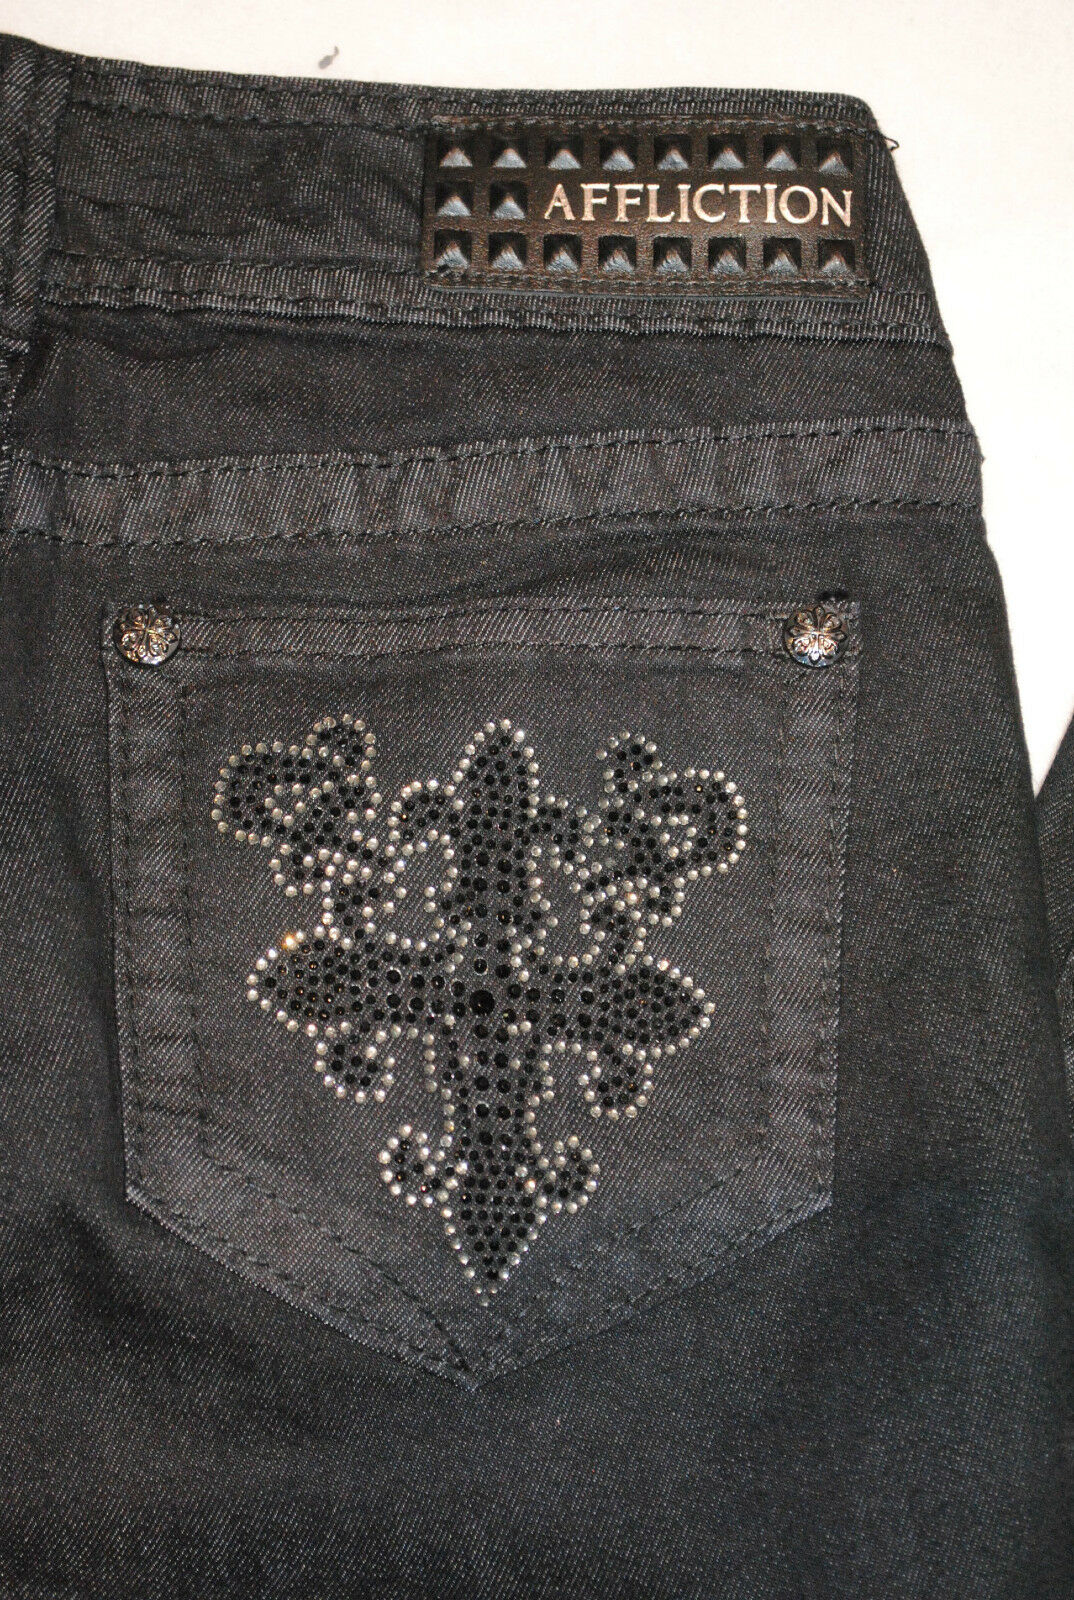 NWT AFFLICTION womens RAQUEL skinny CRYSTAL BLADE CROSS embellished JEANS 24